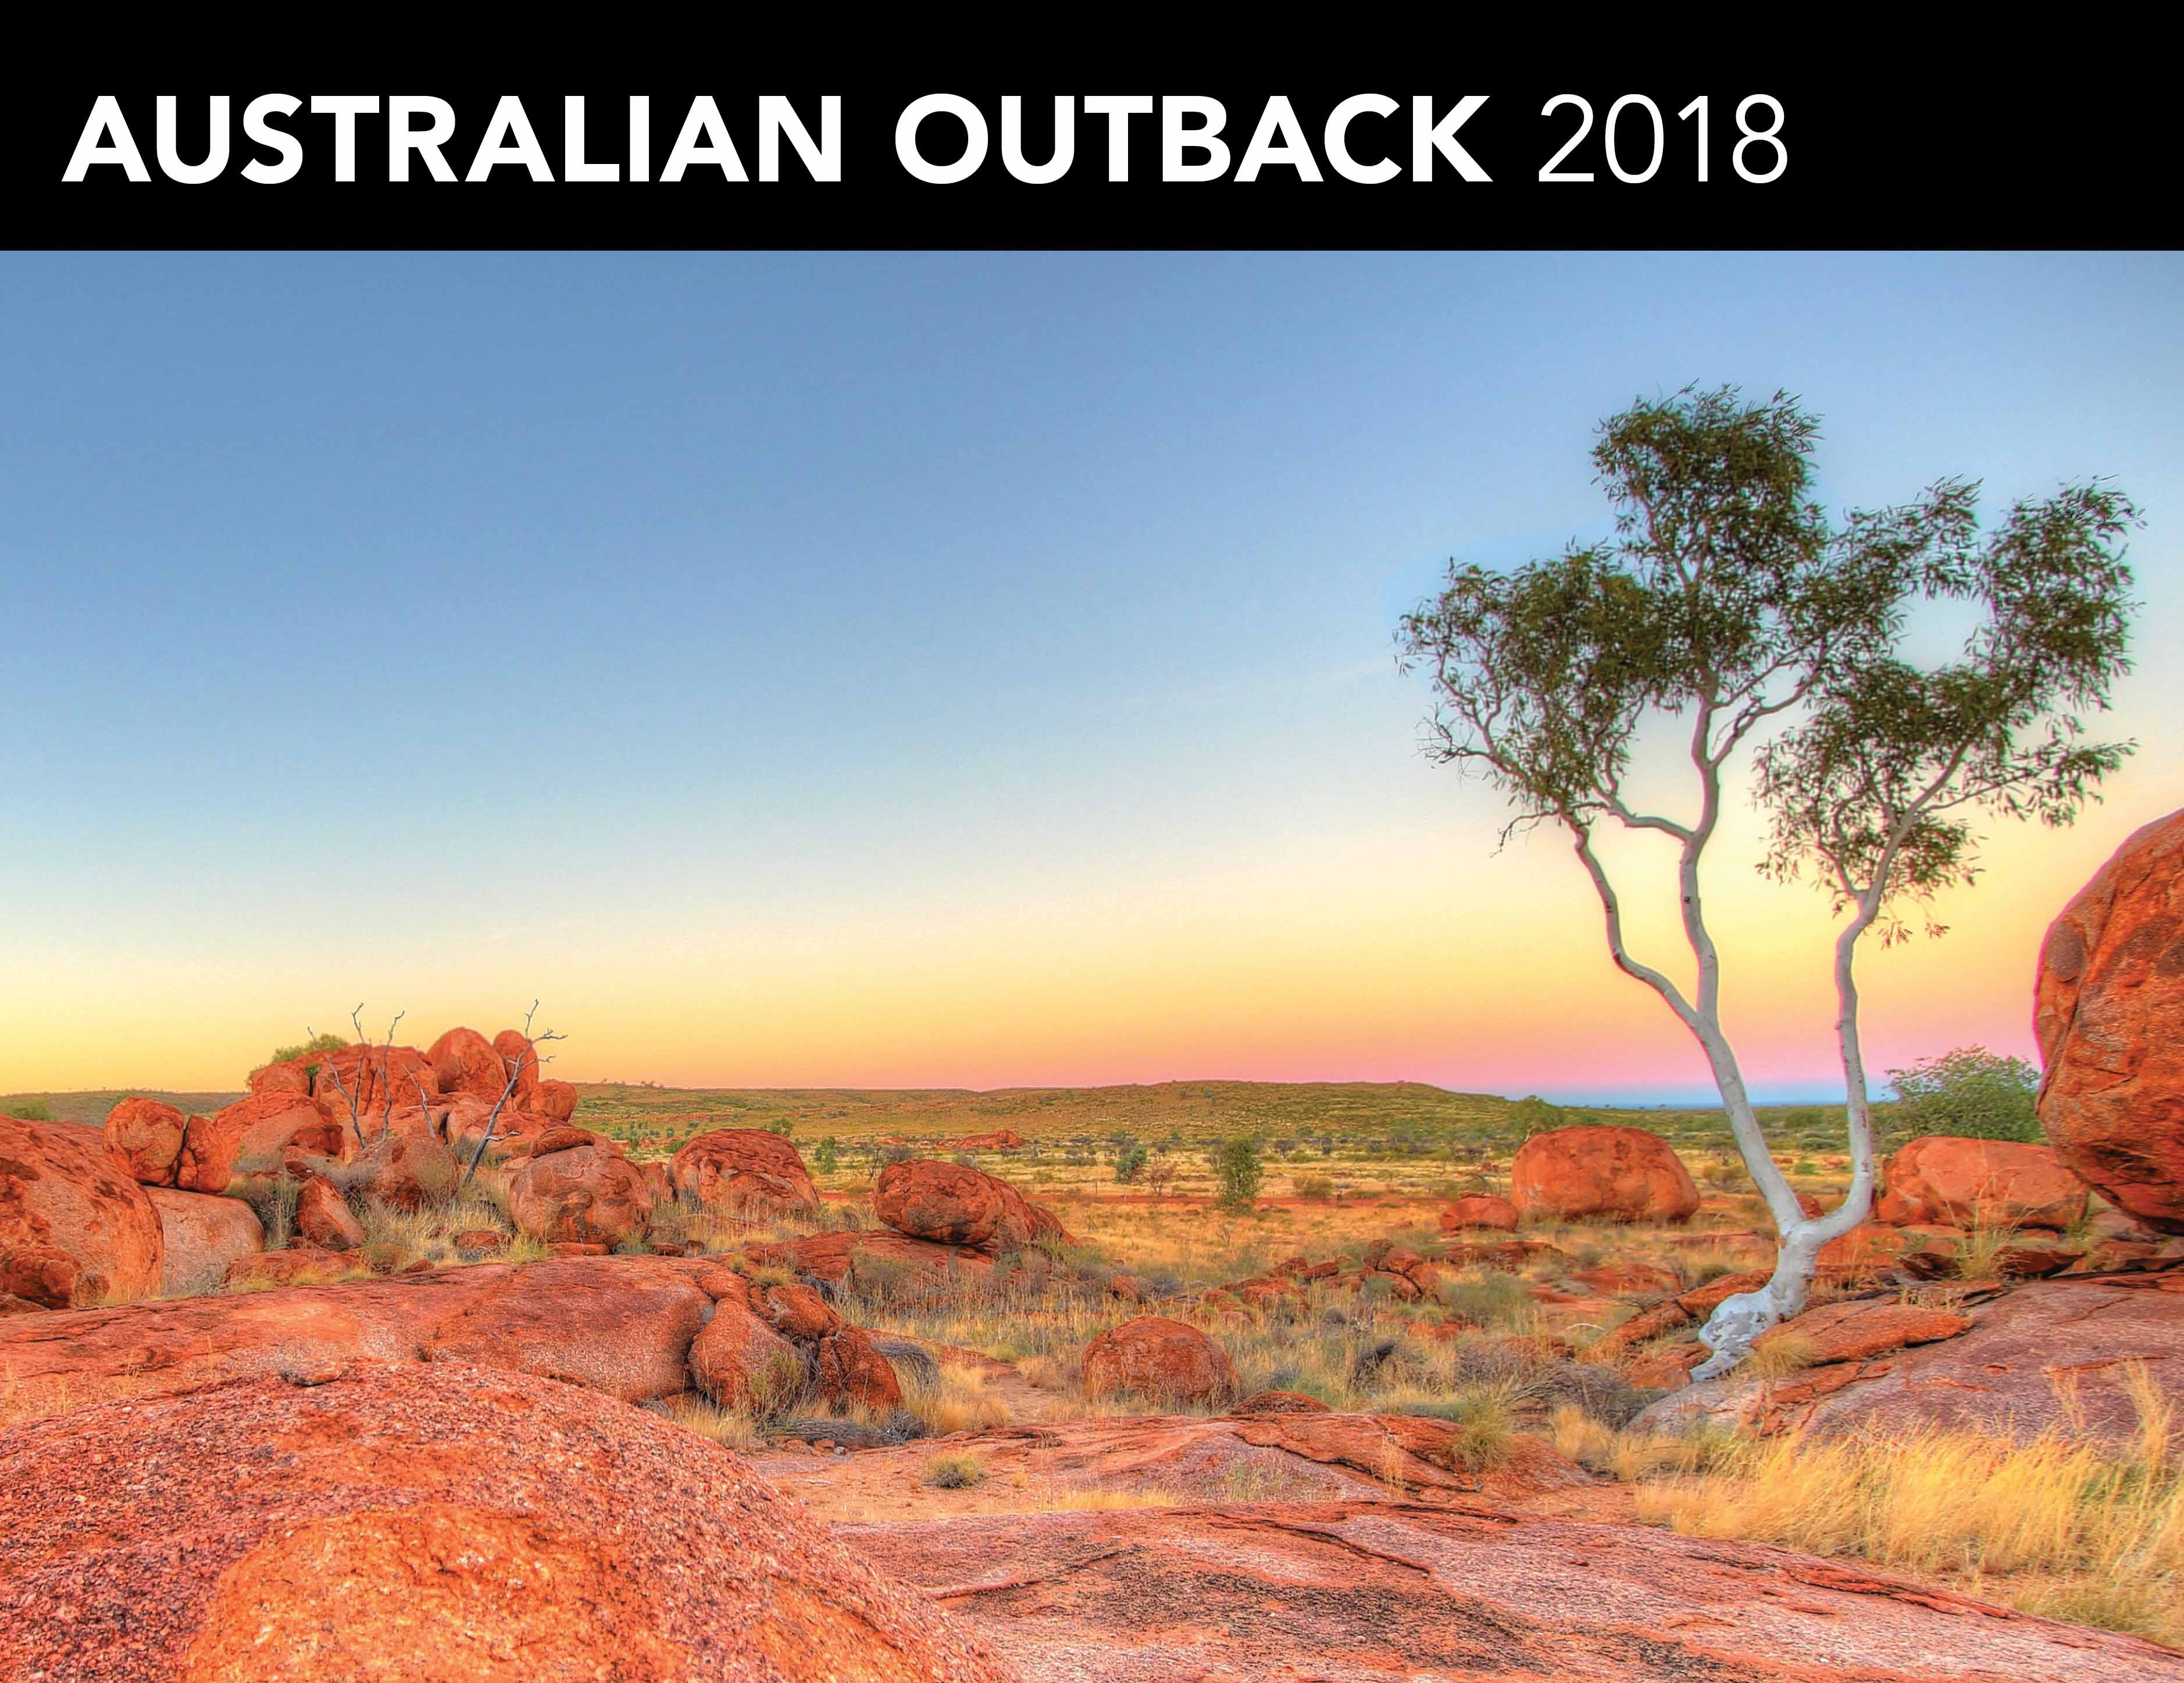 From the 2018 Australiana Collection